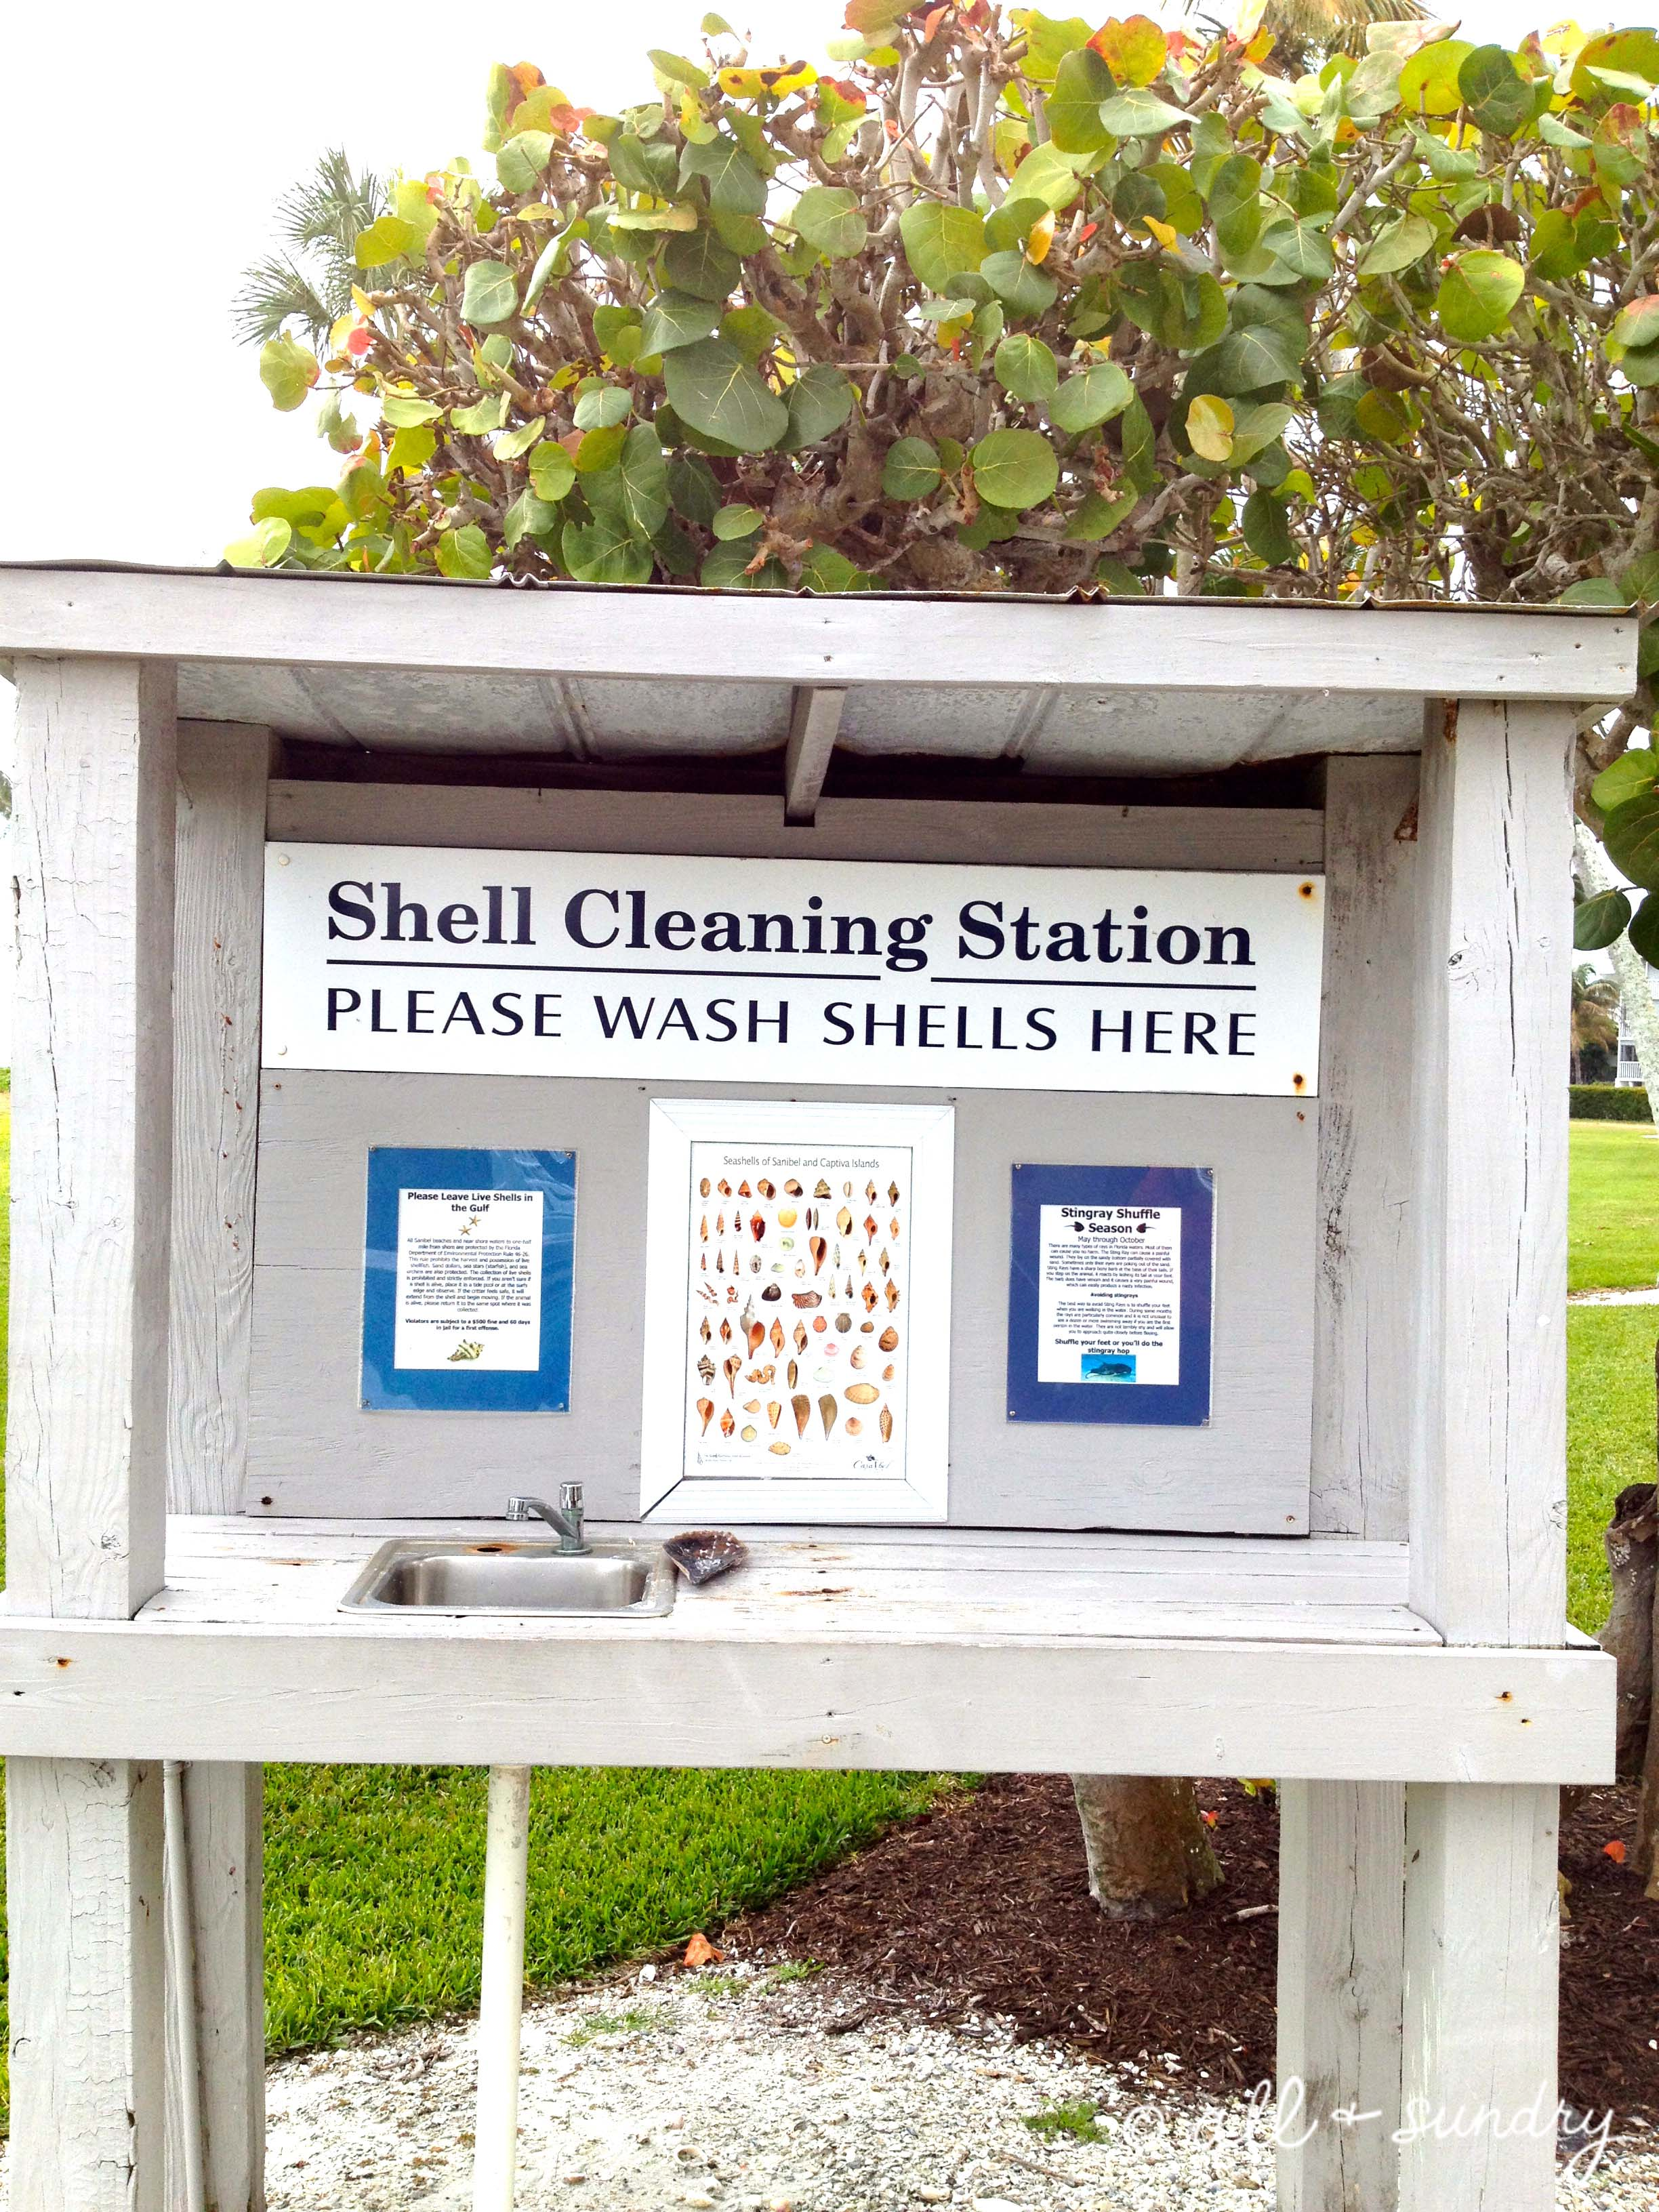 Shell Cleaning Station